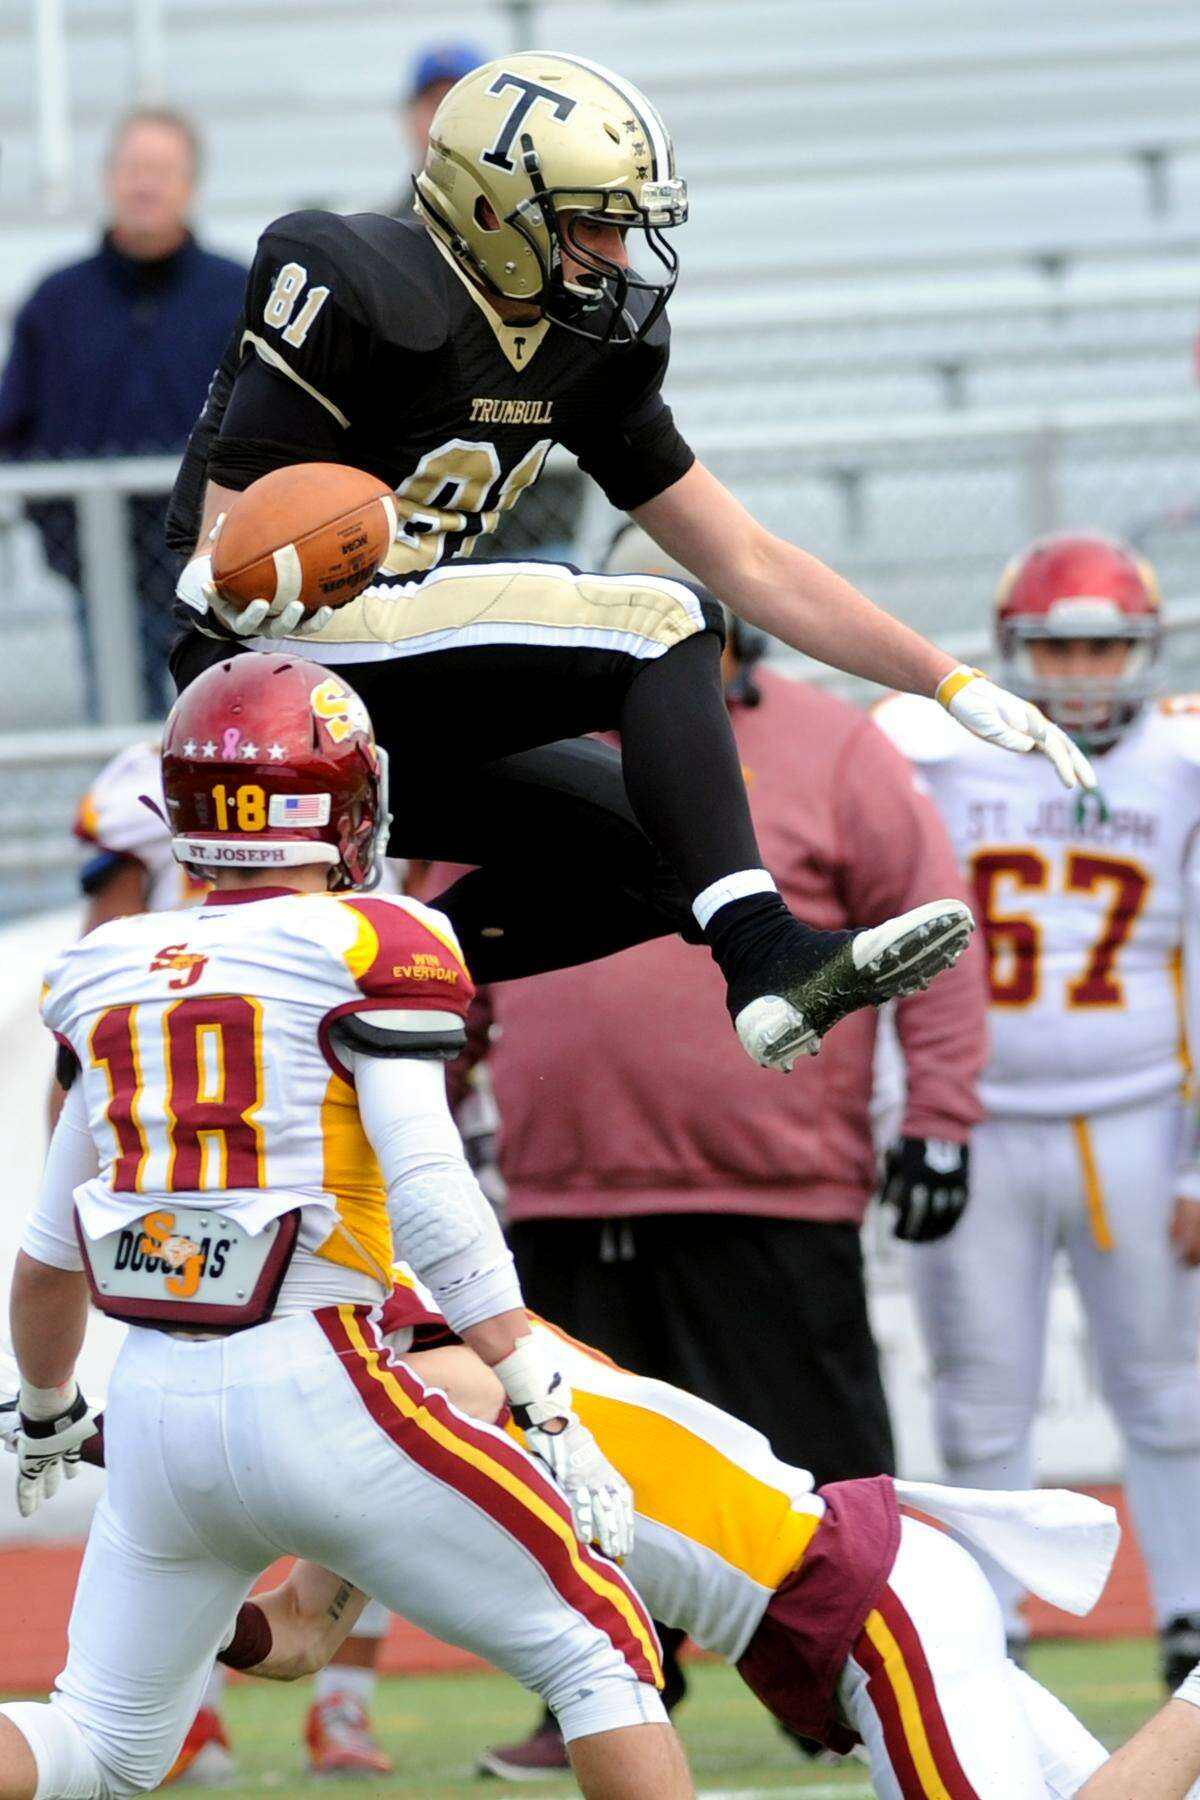 Trumbull receiver Zachary Lombardi leaps over St. Joseph defenders during high school football action at Trumbull High School on Thanksgiving Day, Nov. 24, 2016.